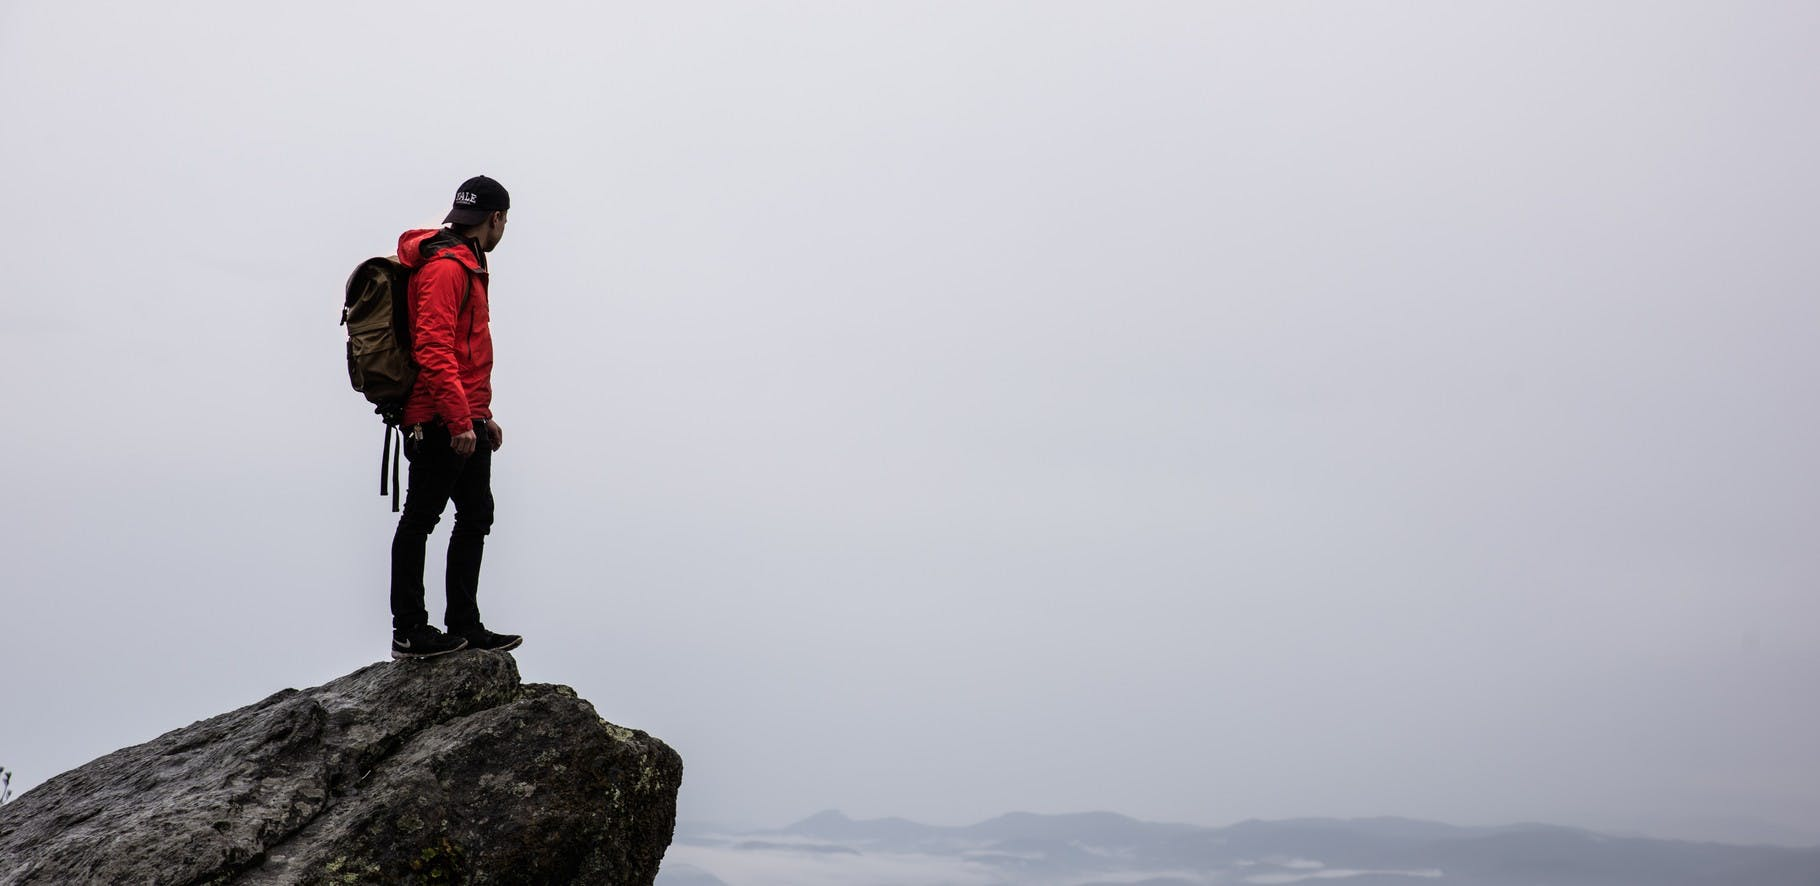 Tramper with a backpack on standing on the edge of a rock over looking a valley